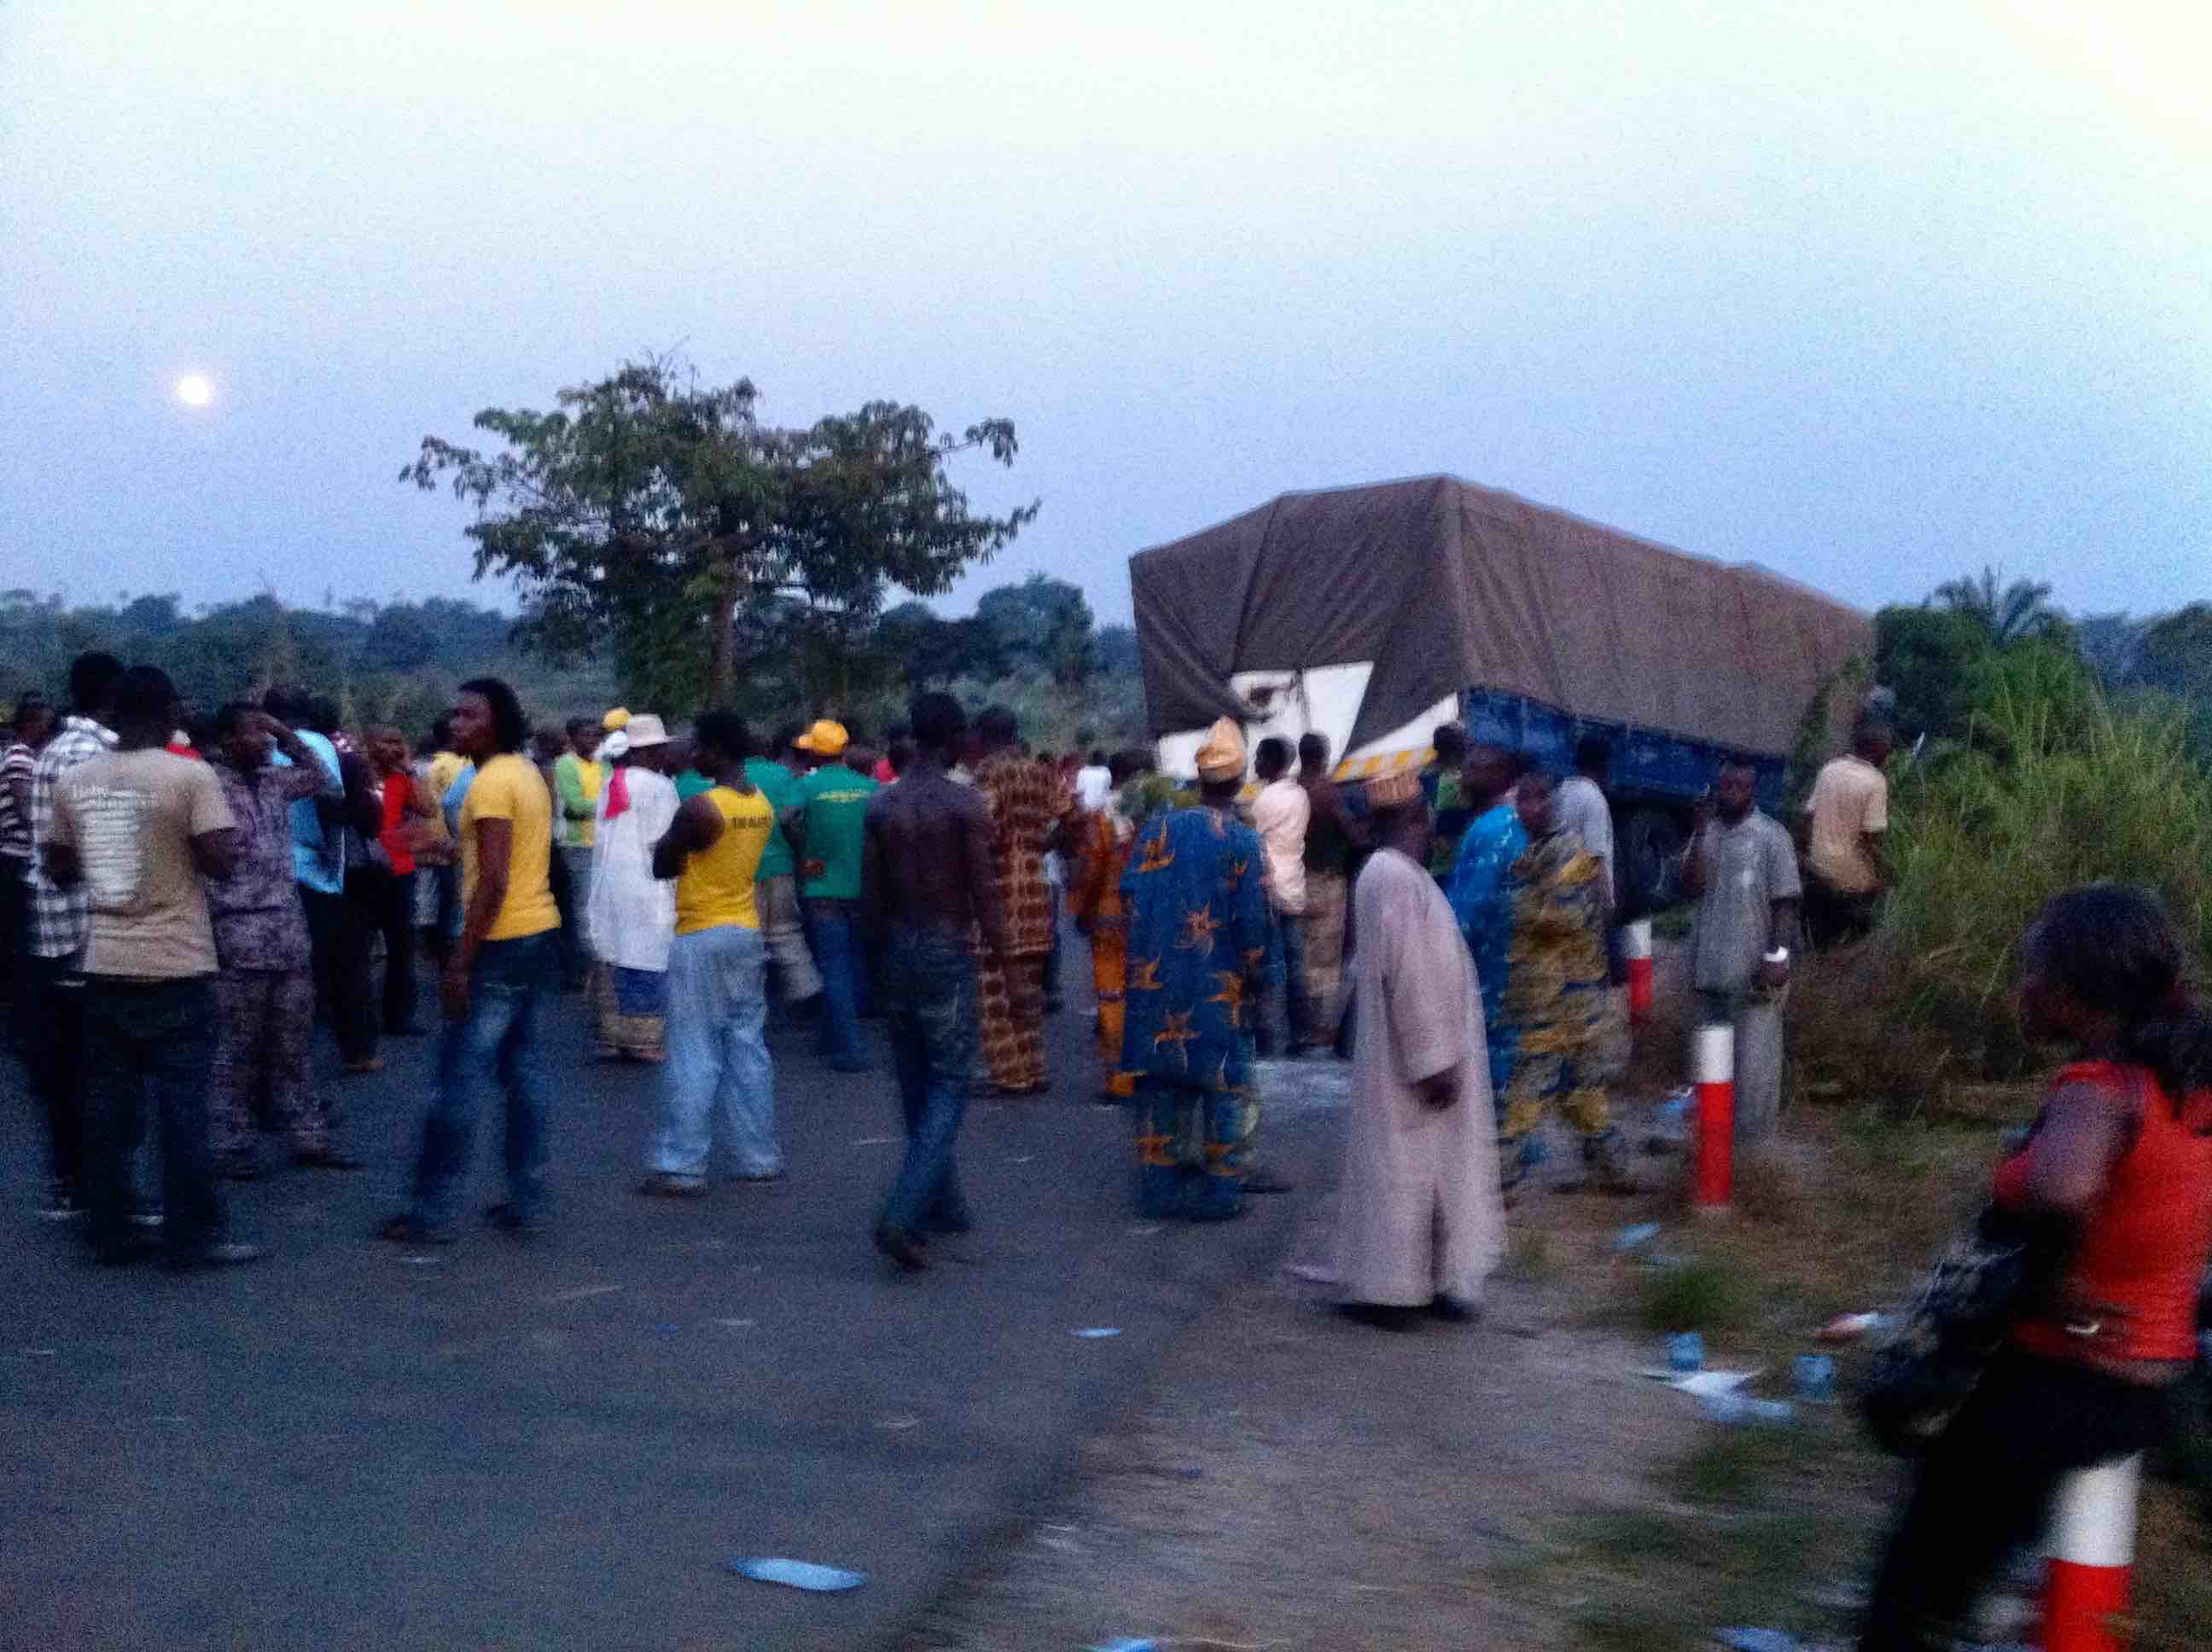 Peace Mass Transit bus accident scene in Okada, Edo, Nigeria. #JujuFilms